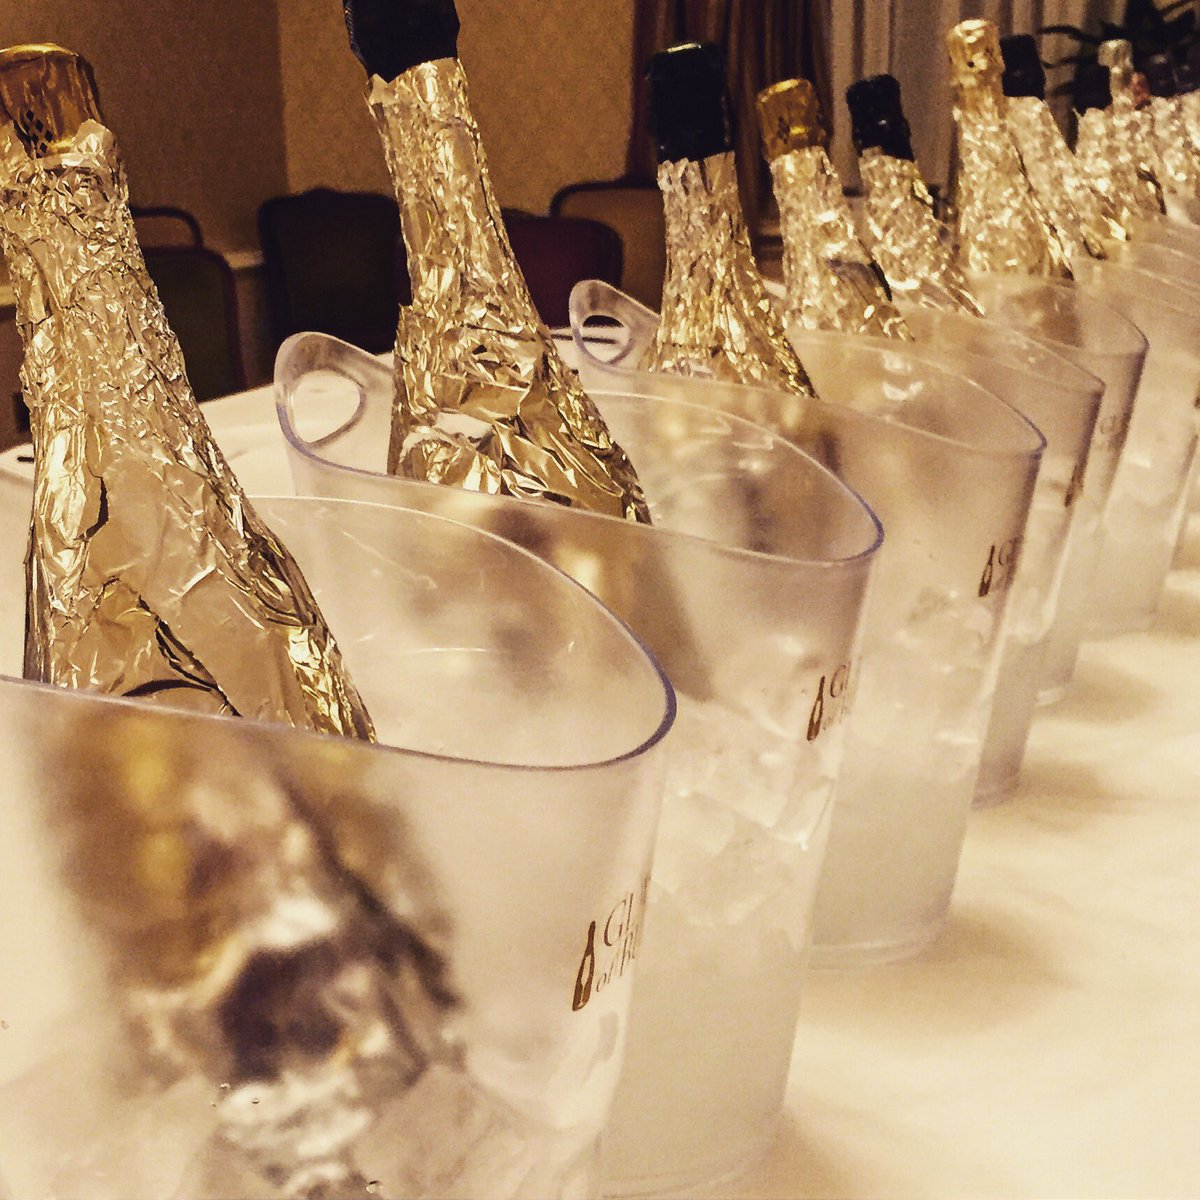 Great to have @GlassOfBubbly here for their low-calorie Sparkling Wine blind tasting https://t.co/mm98VpPL21